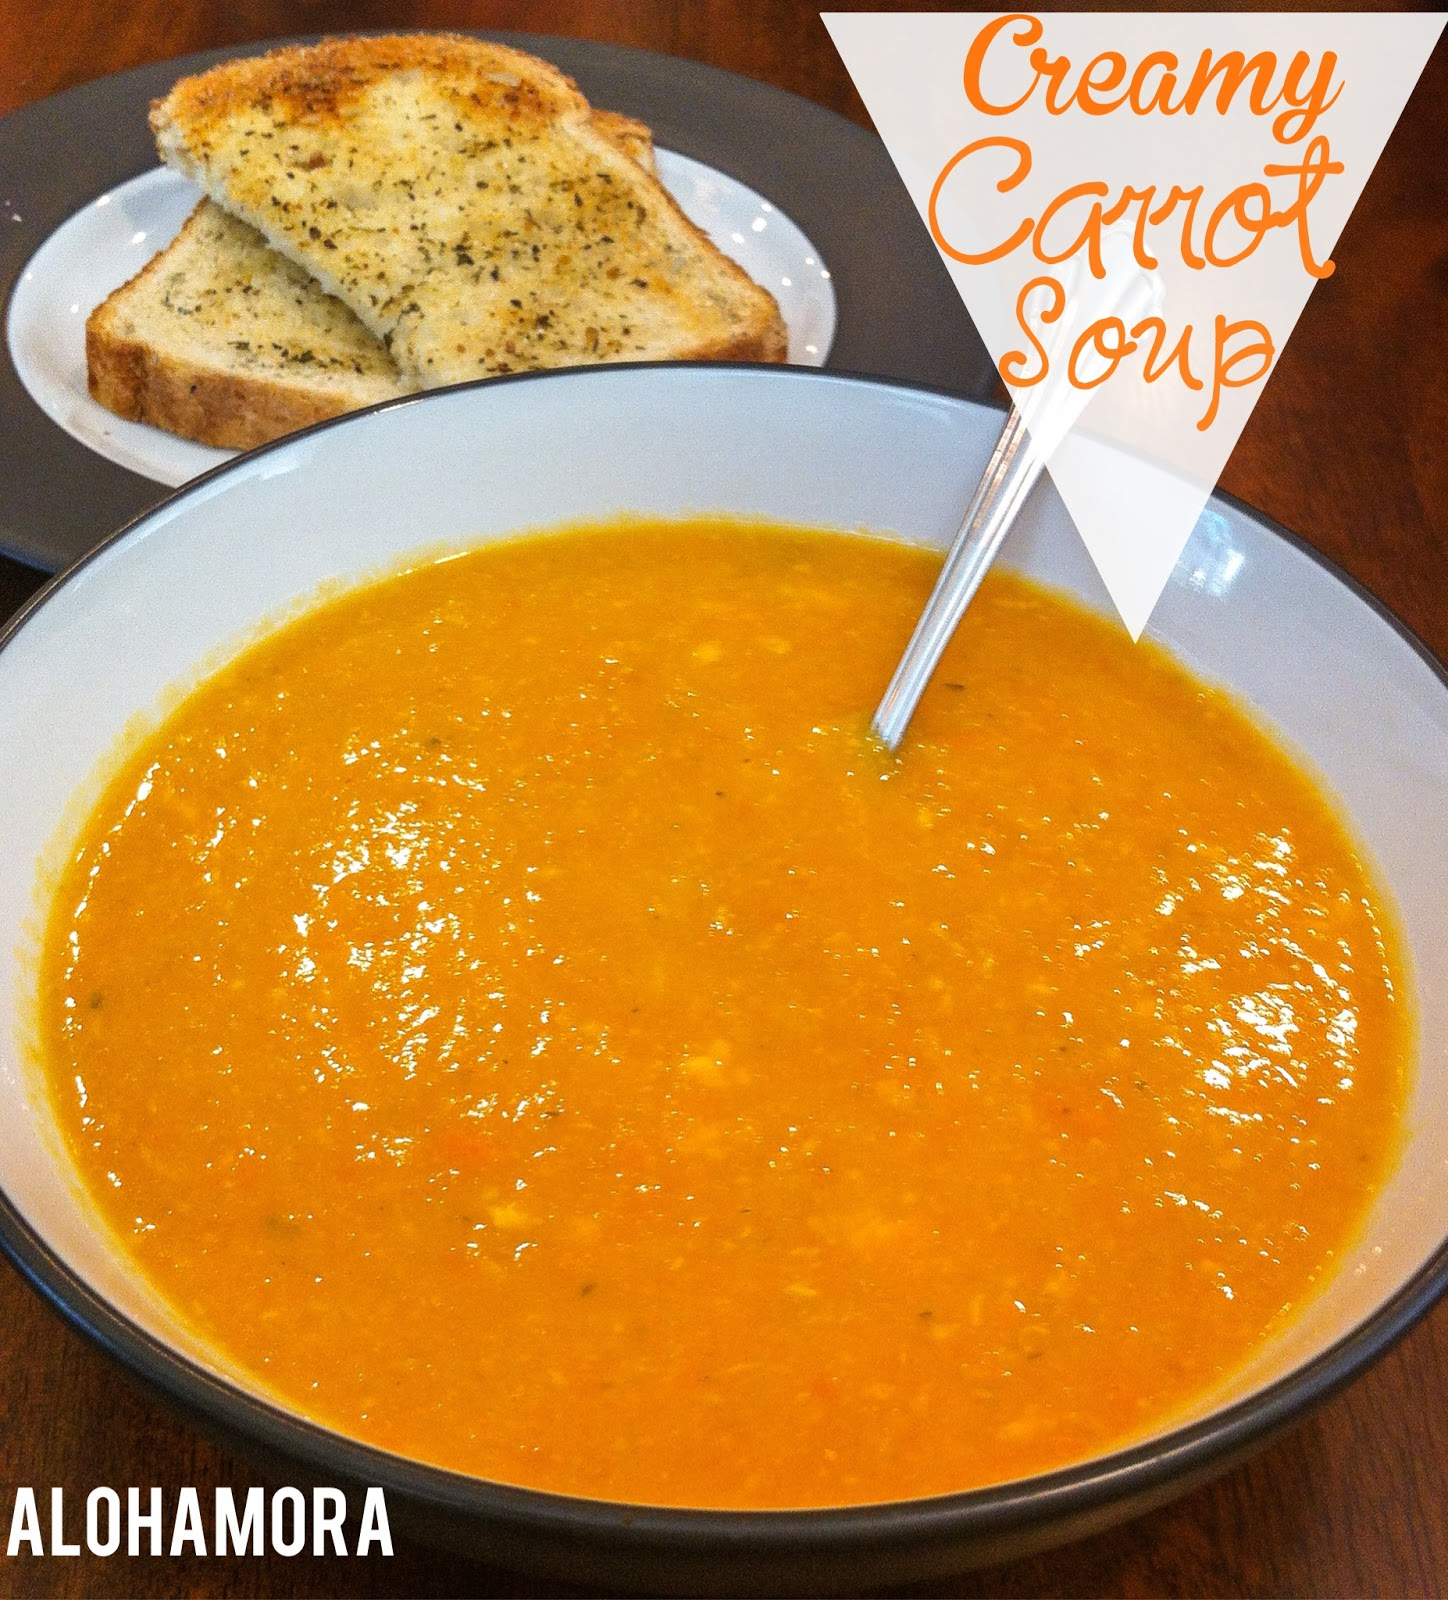 Healthy Creamy Carrot Soup.  Easy crock-pot/slow cooker meal that you can leave all day.  Cheap dinner to make, and one your kids/toddlers will enjoy as much as you.  Babies can enjoy this pureed soup as well.  All around fabulous soup inspired by the book Carrot Soup by John Segal Alohamora Open a Book http://alohamoraopenabook.blogspot.com/